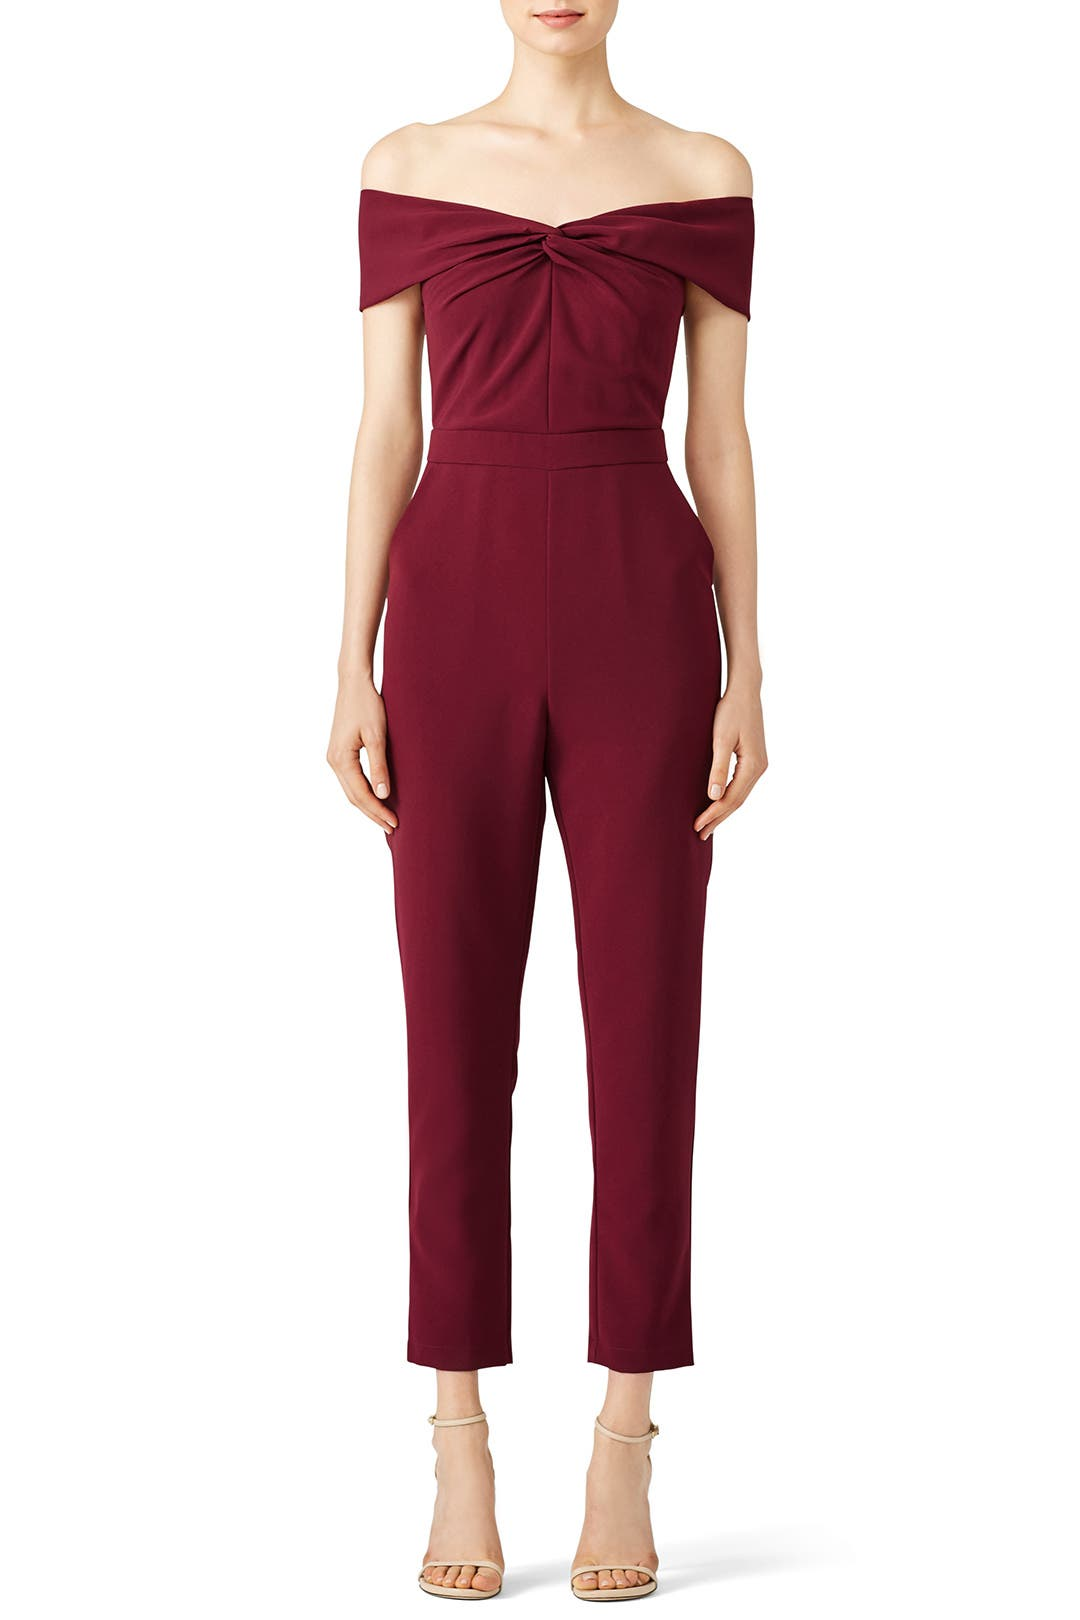 be725e209c7 Karlie Woven Jumpsuit by Adelyn Rae for  30